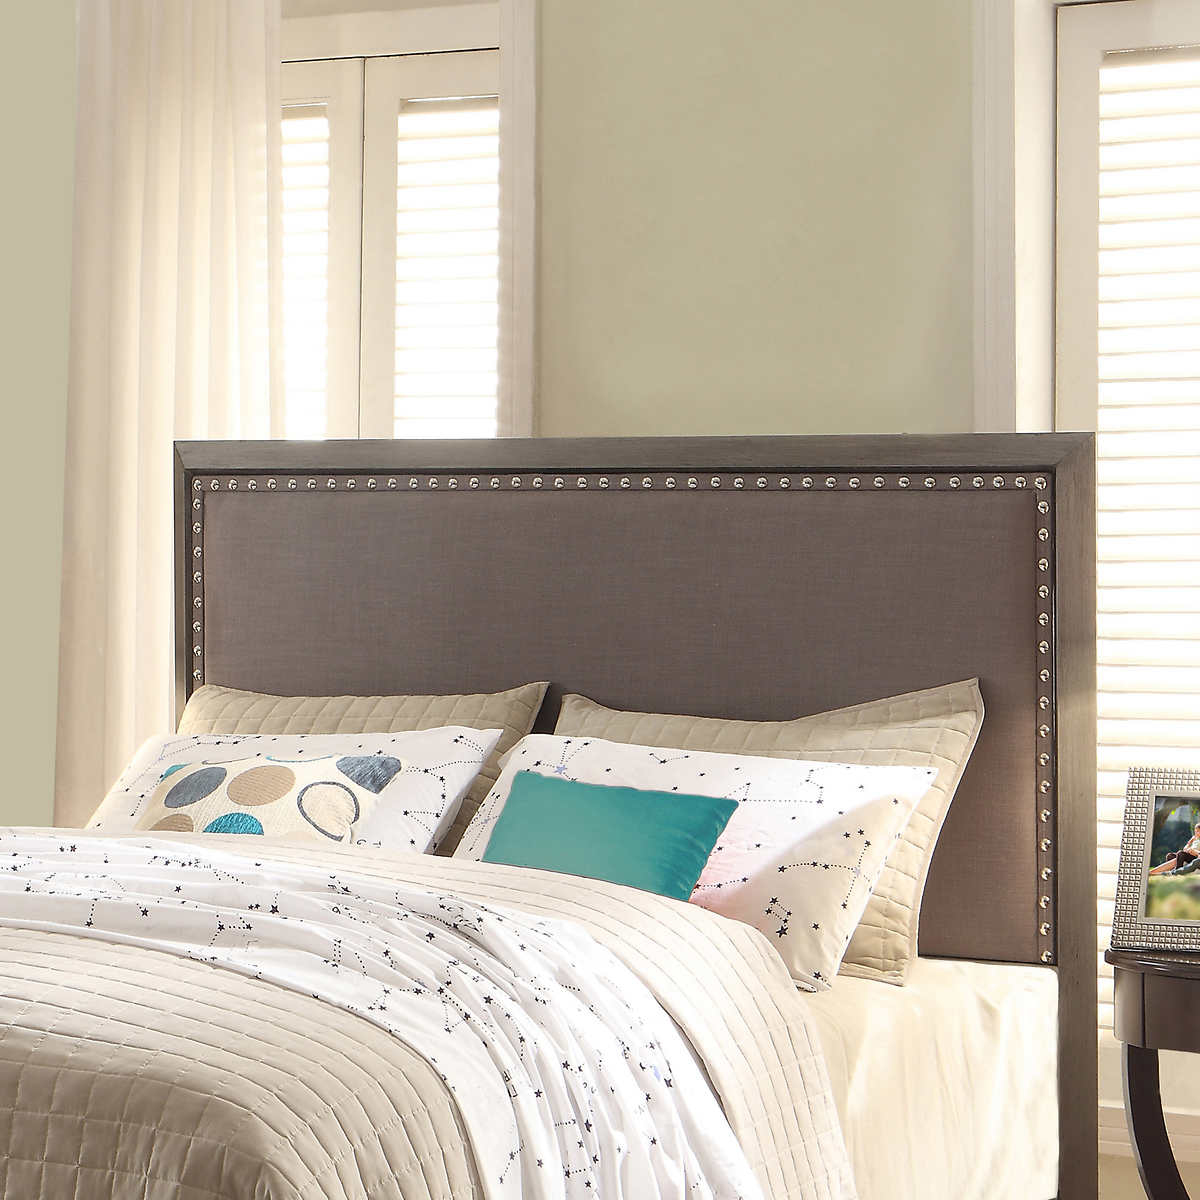 Bed frames headboards - Normandy King Headboard